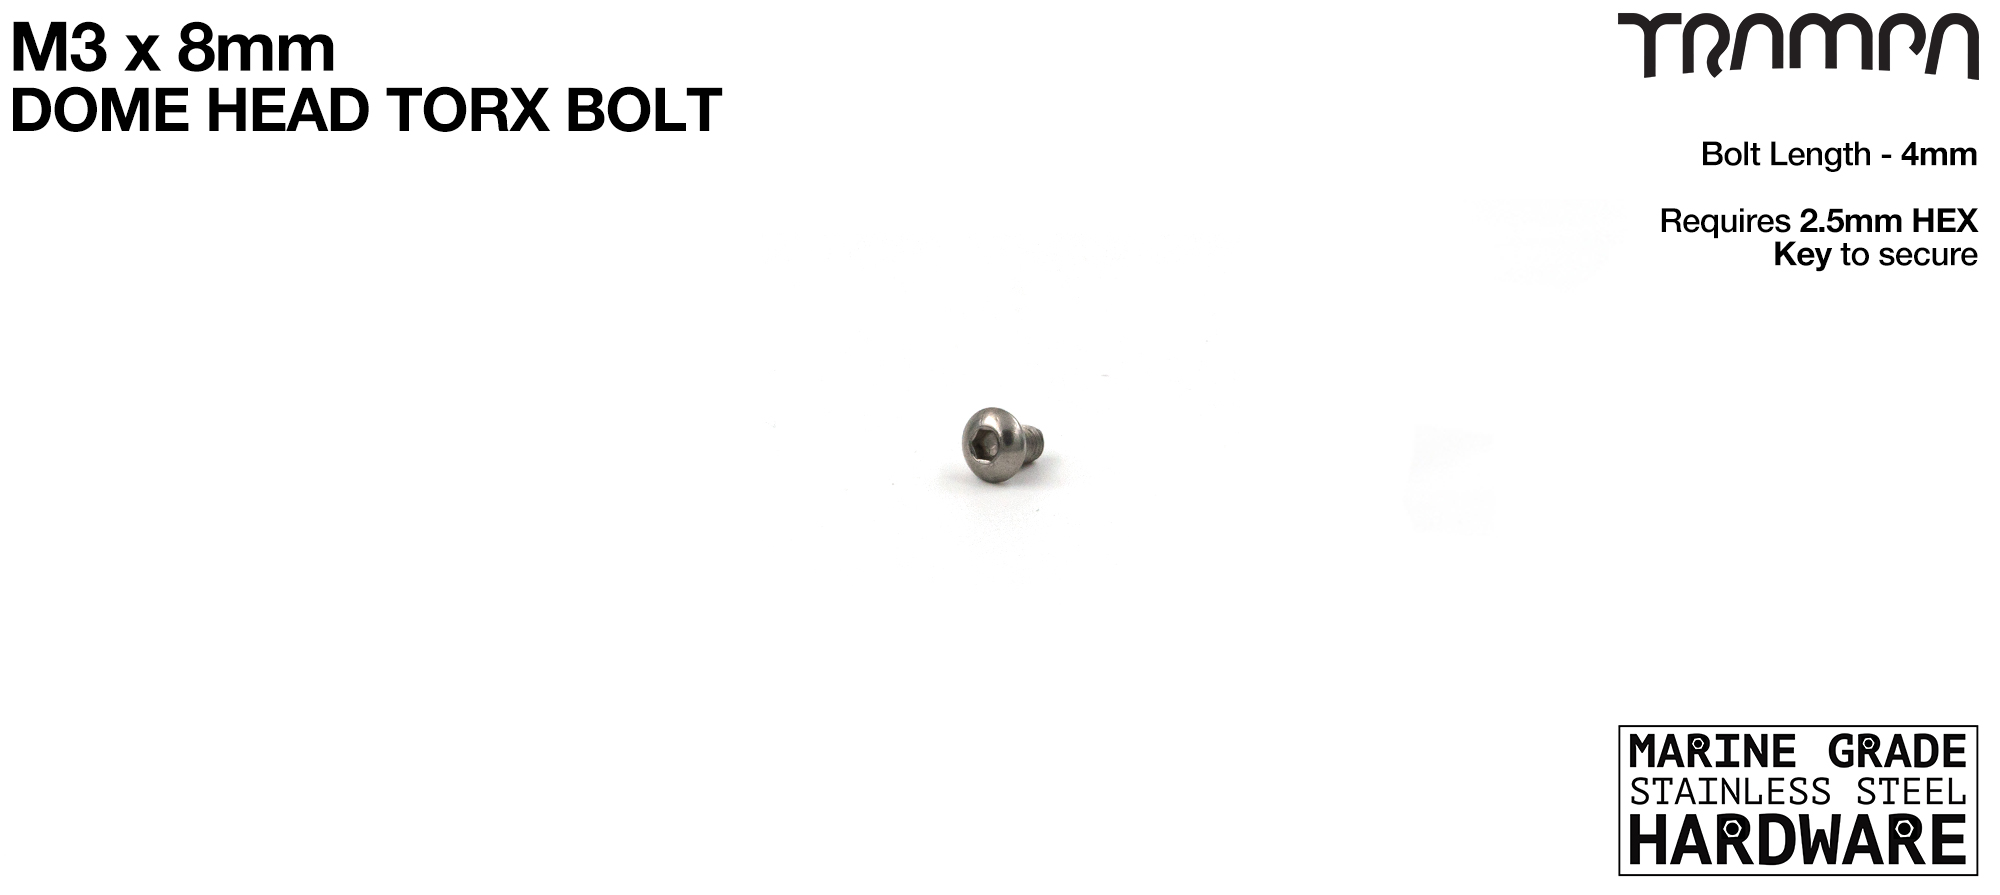 M3 x 4mm Dome Headed Head Bolt DIN6912 Marine Grade Stainless Steel